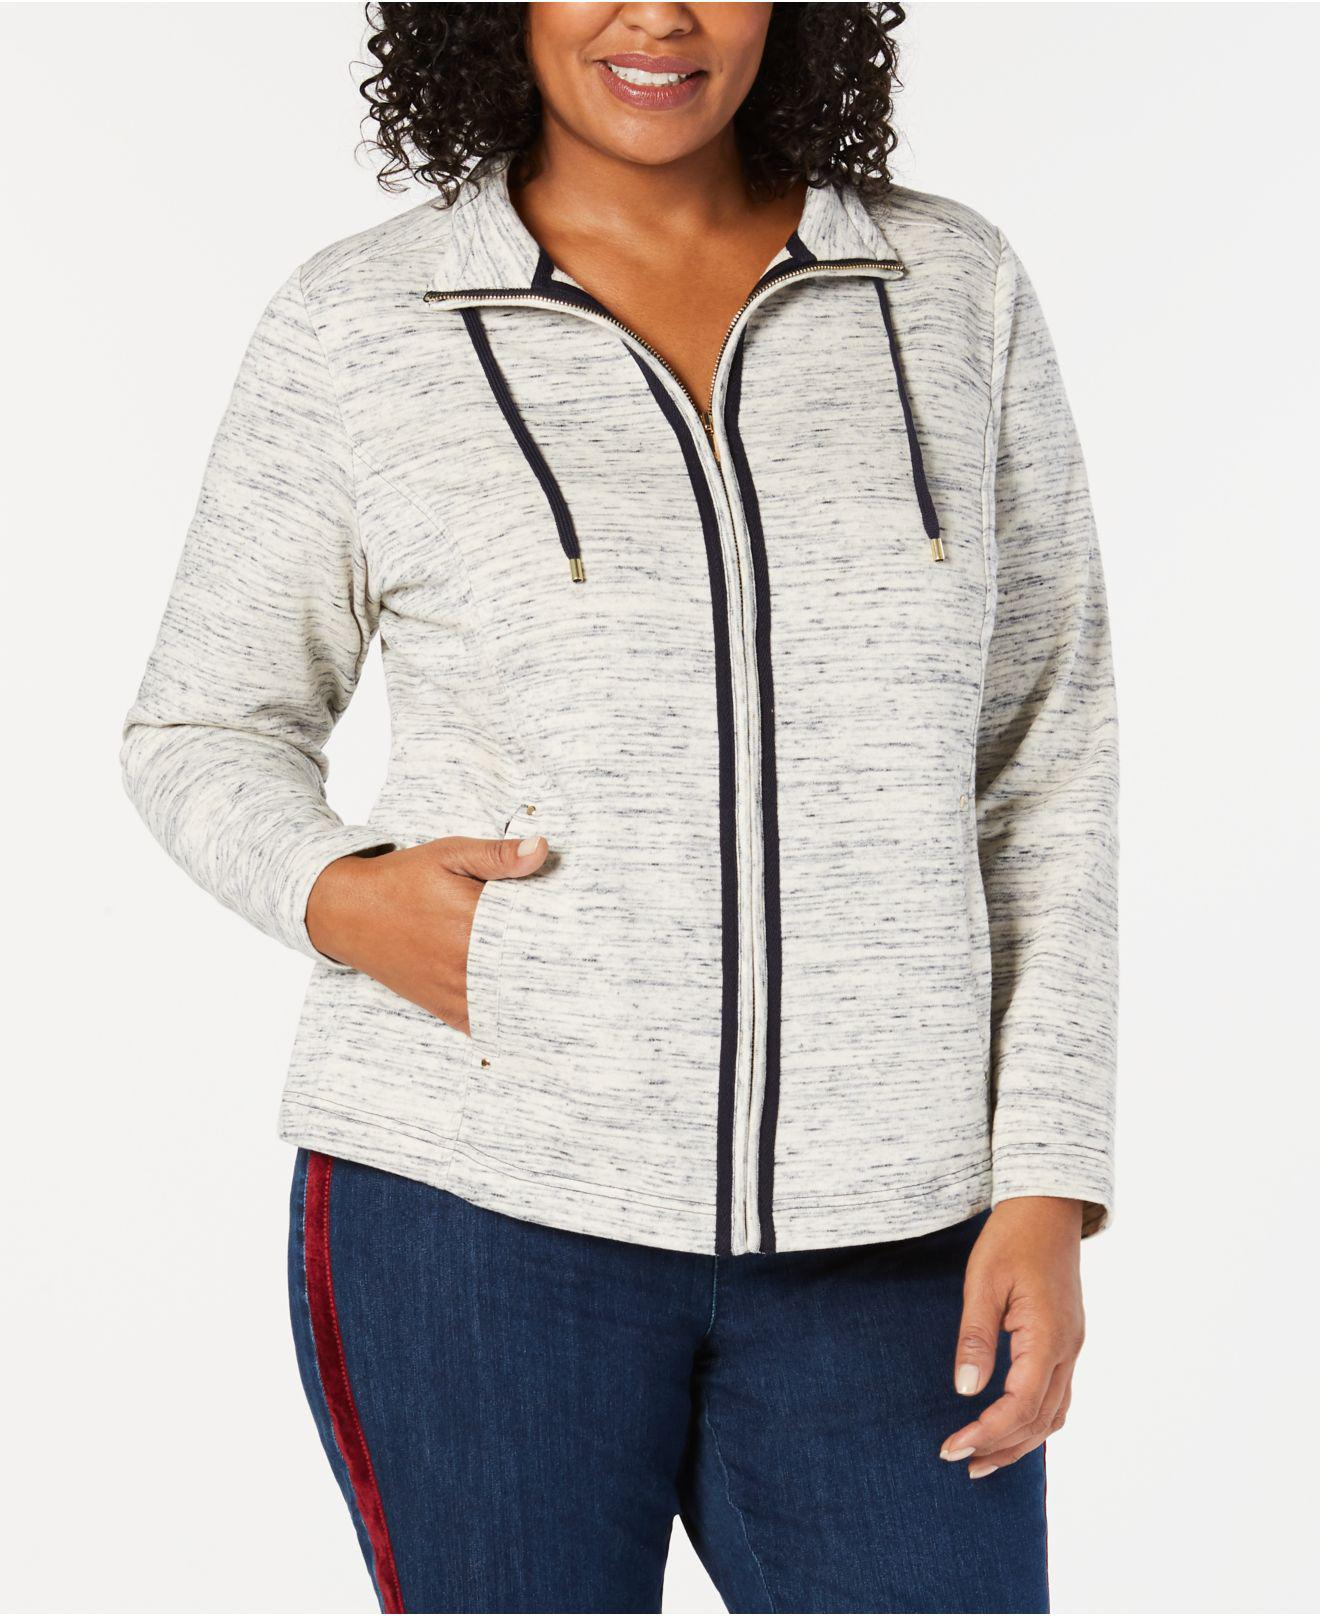 592b049d68a Lyst - Charter Club Plus Size Space-dyed Jacket